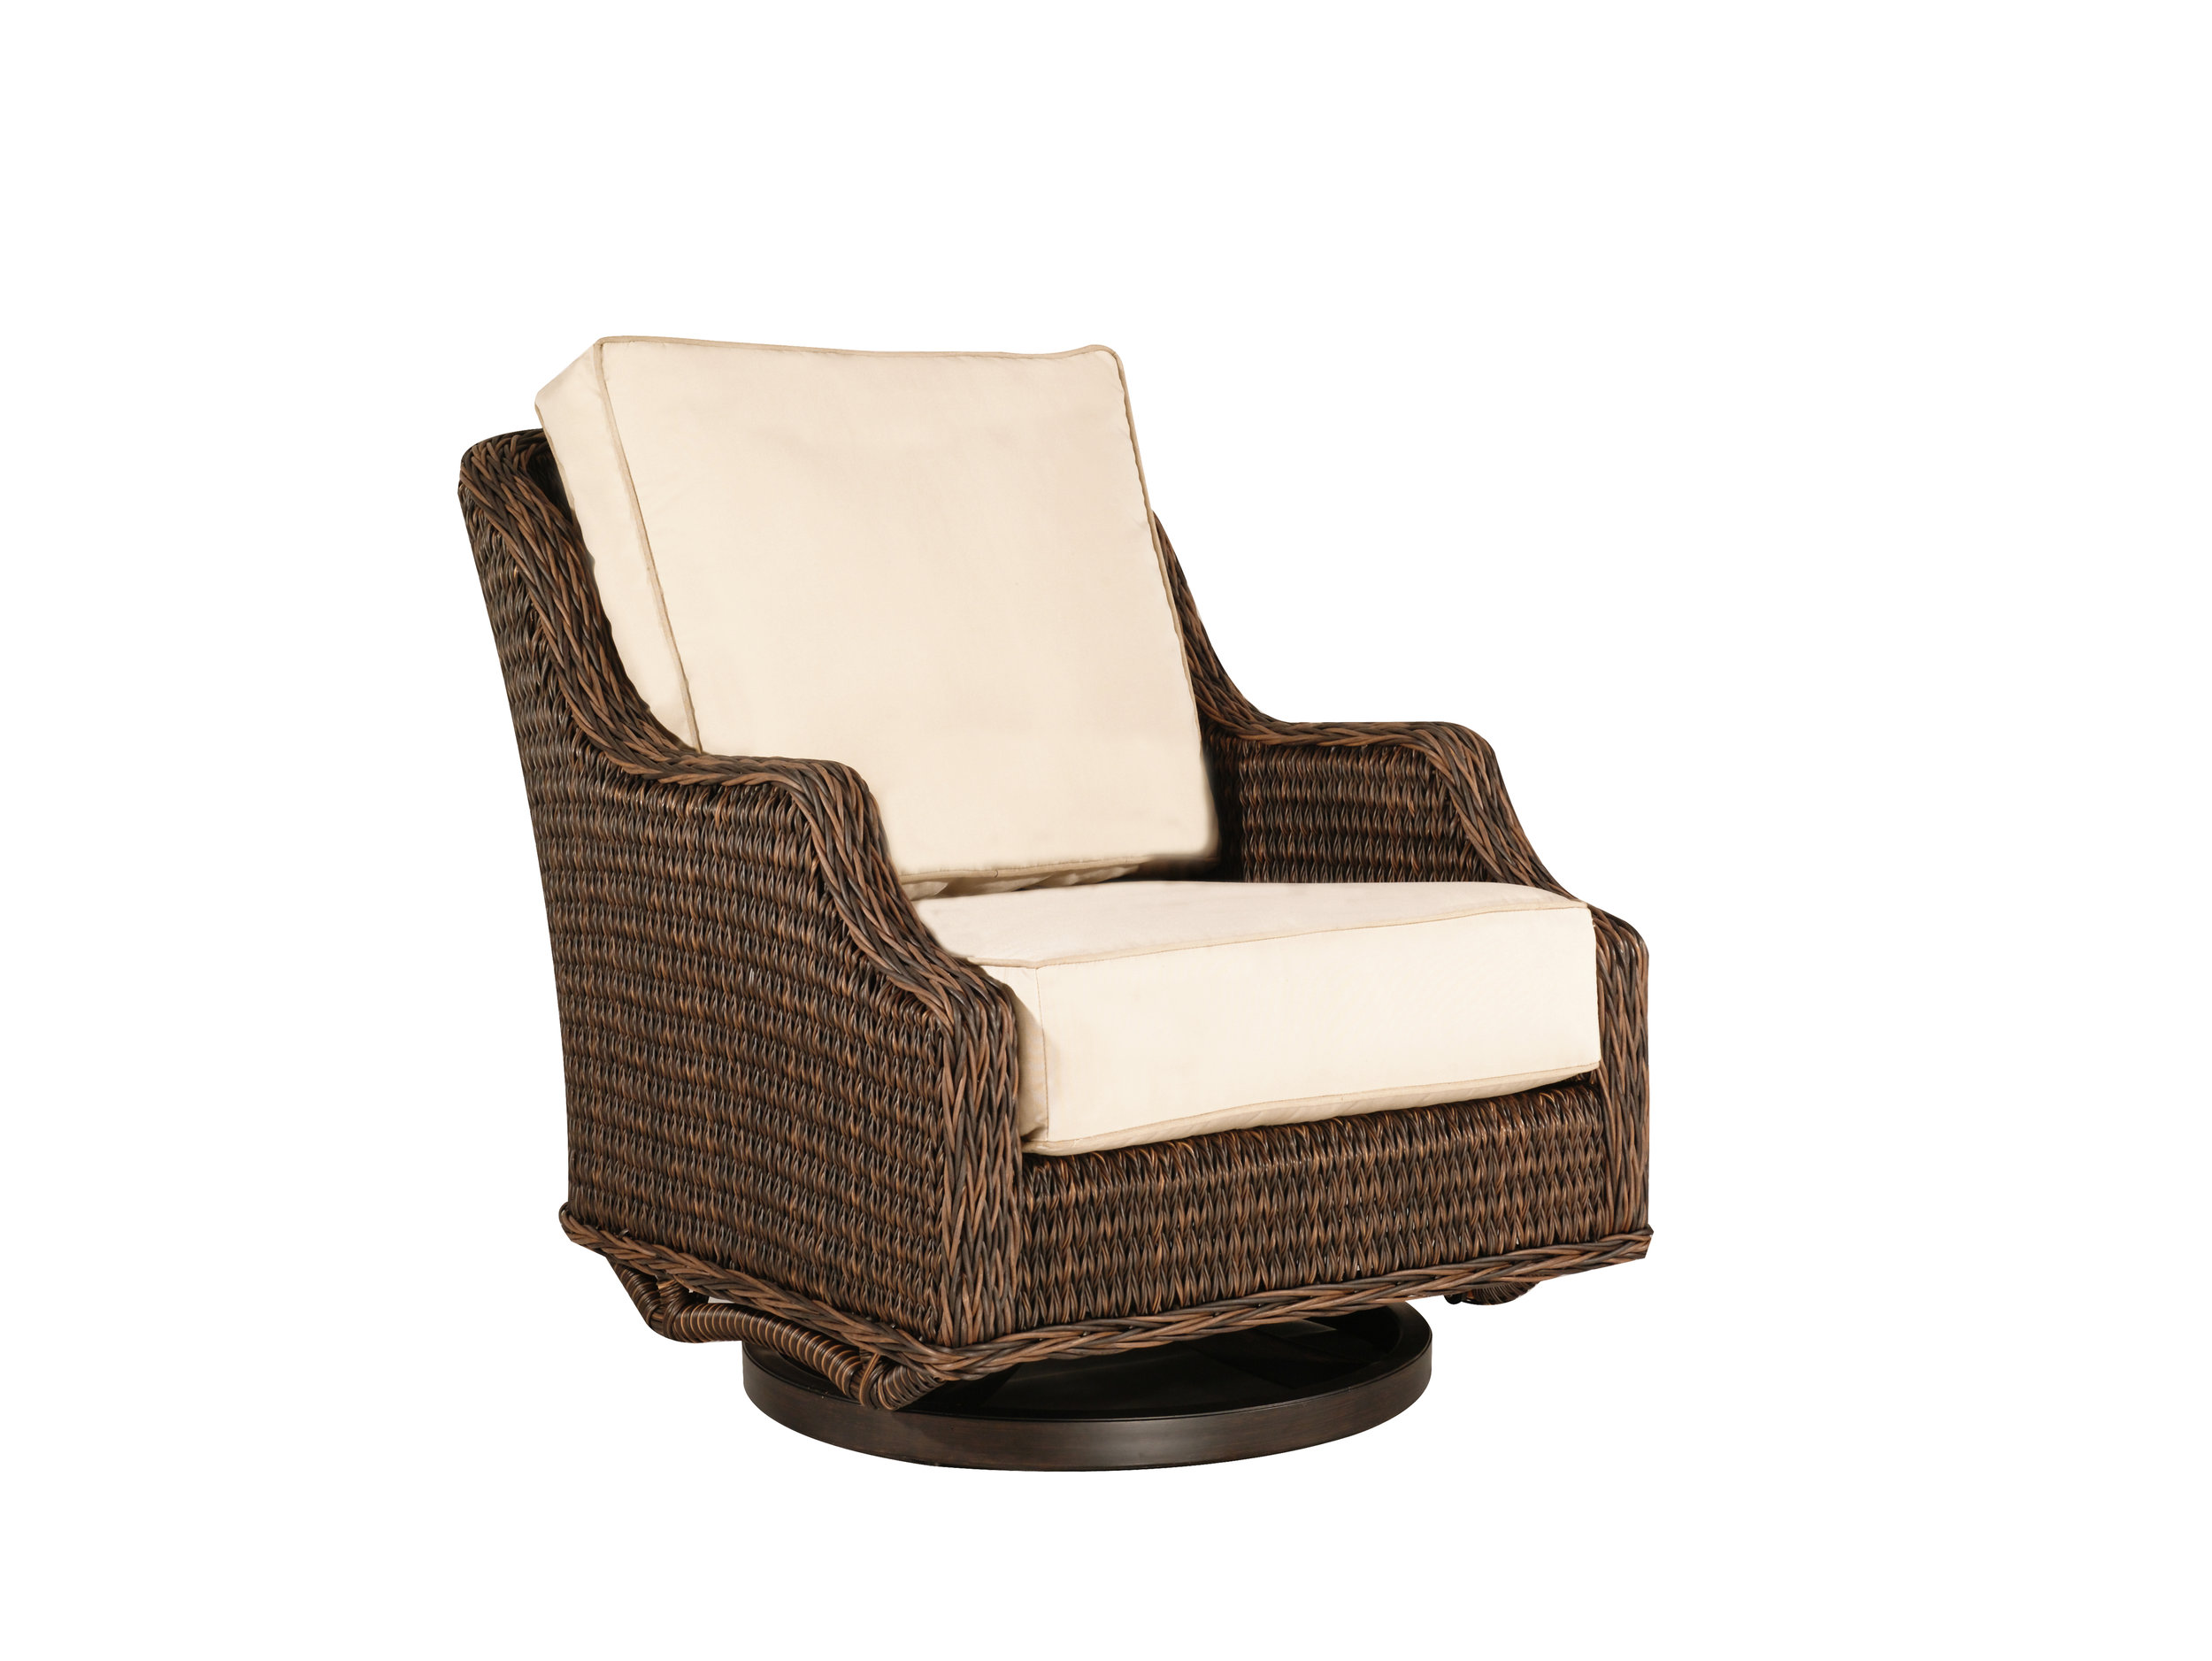 "973029 Monticello DS Swivel Glider   31.8"" x 40.2"" x 36.2"""